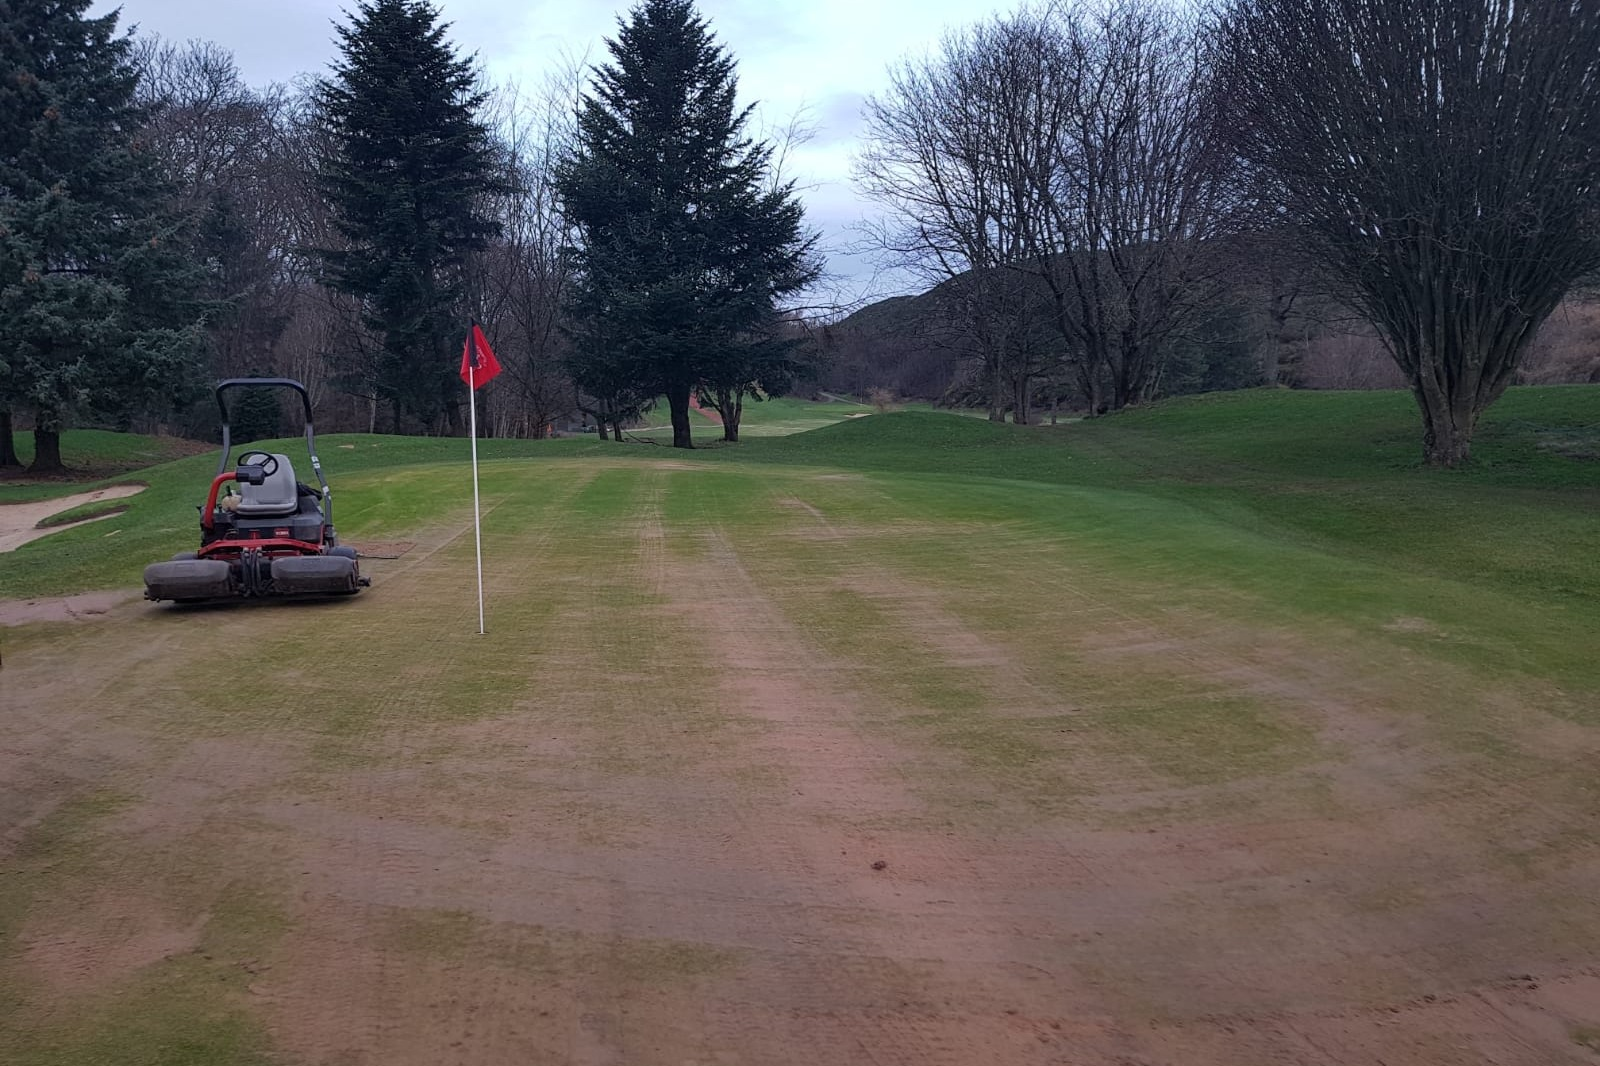 greens and fairways are now dressed regularly